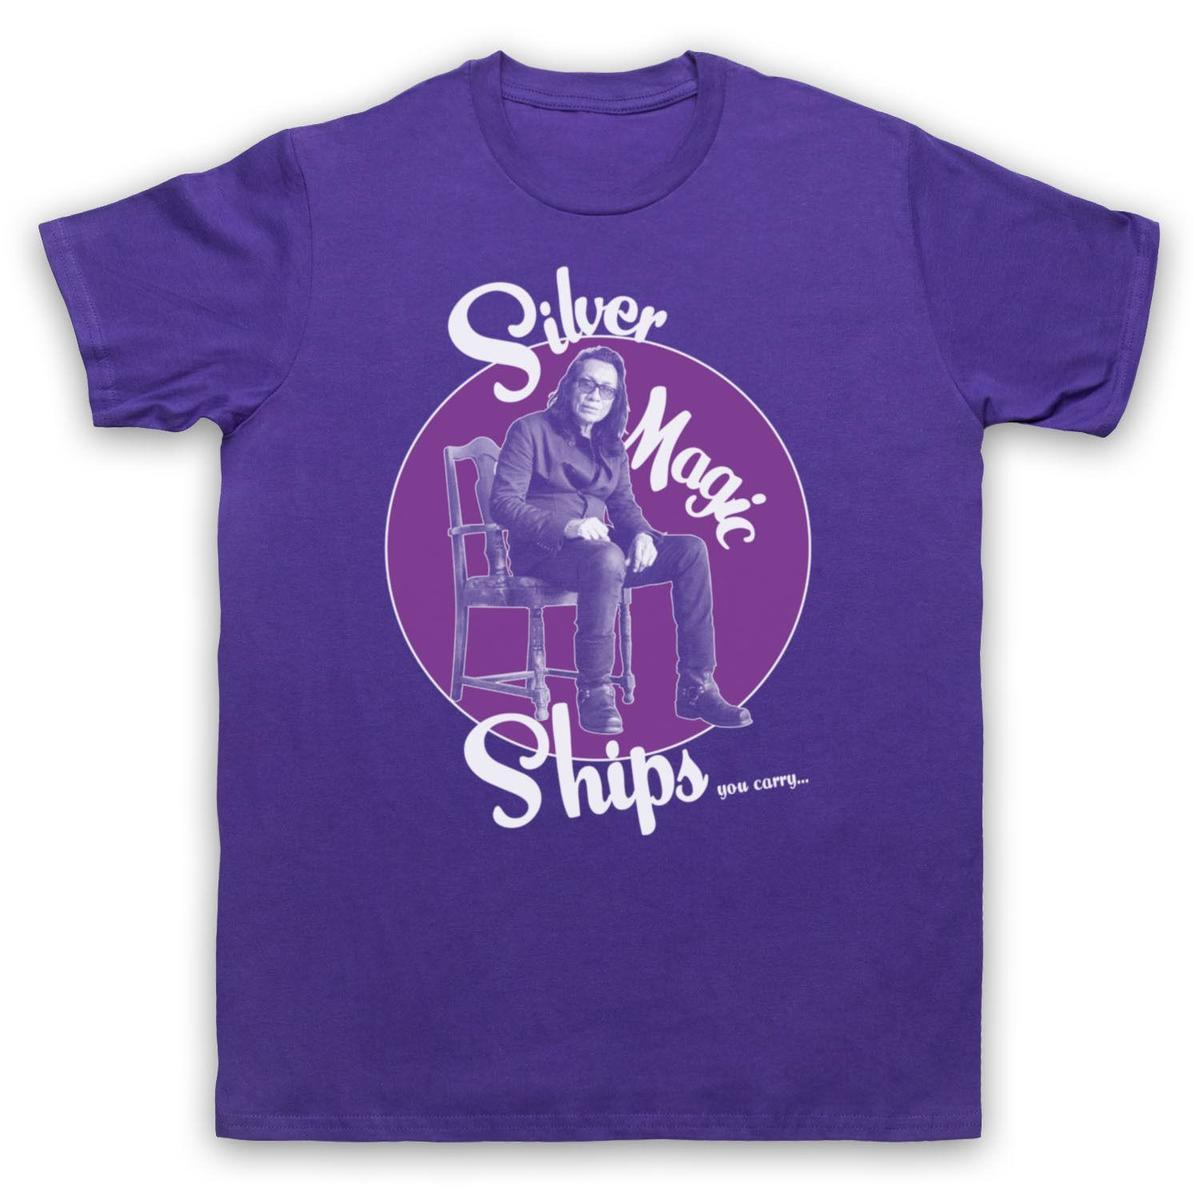 SEARCHING FOR SUGAR MAN RODRIGUEZ UNOFFICIAL FILM T-SHIRT ADULTS /& KIDS SIZES